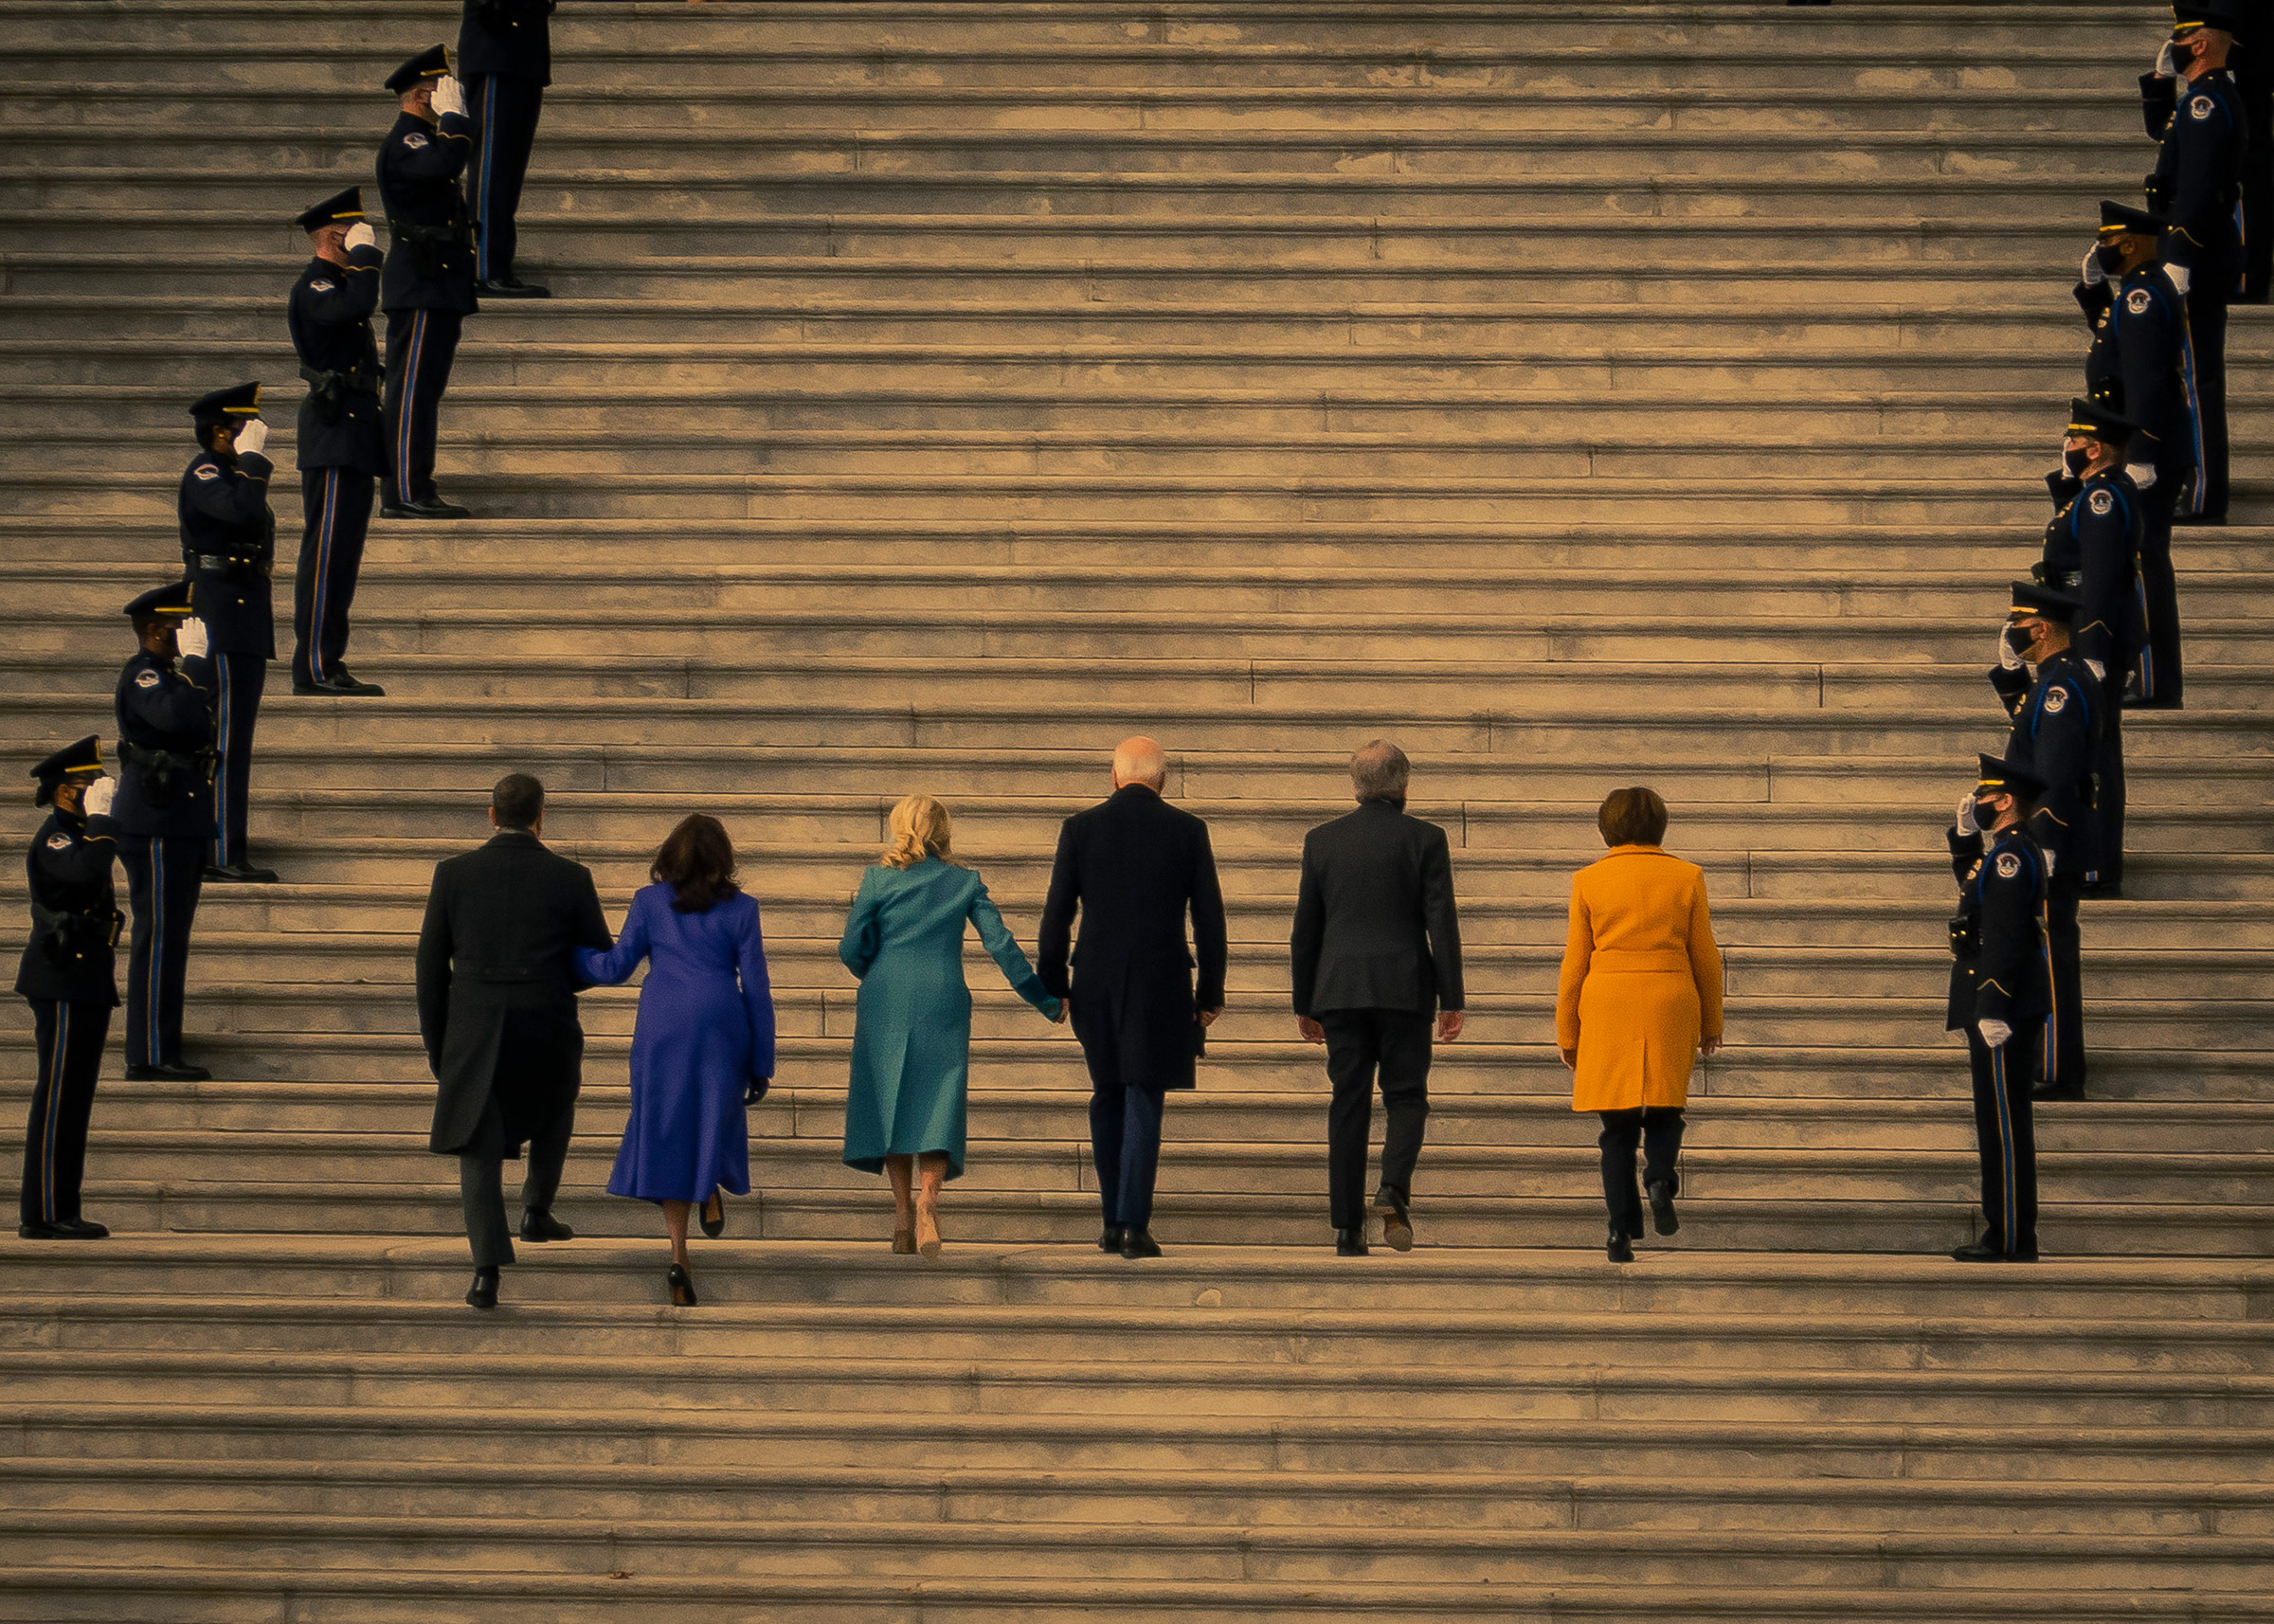 President-elect Joe Biden and Vice President-elect Kamala Harris arrive at the East Front steps of the U.S. Capitol prior the 2021 Presidential Inauguration.